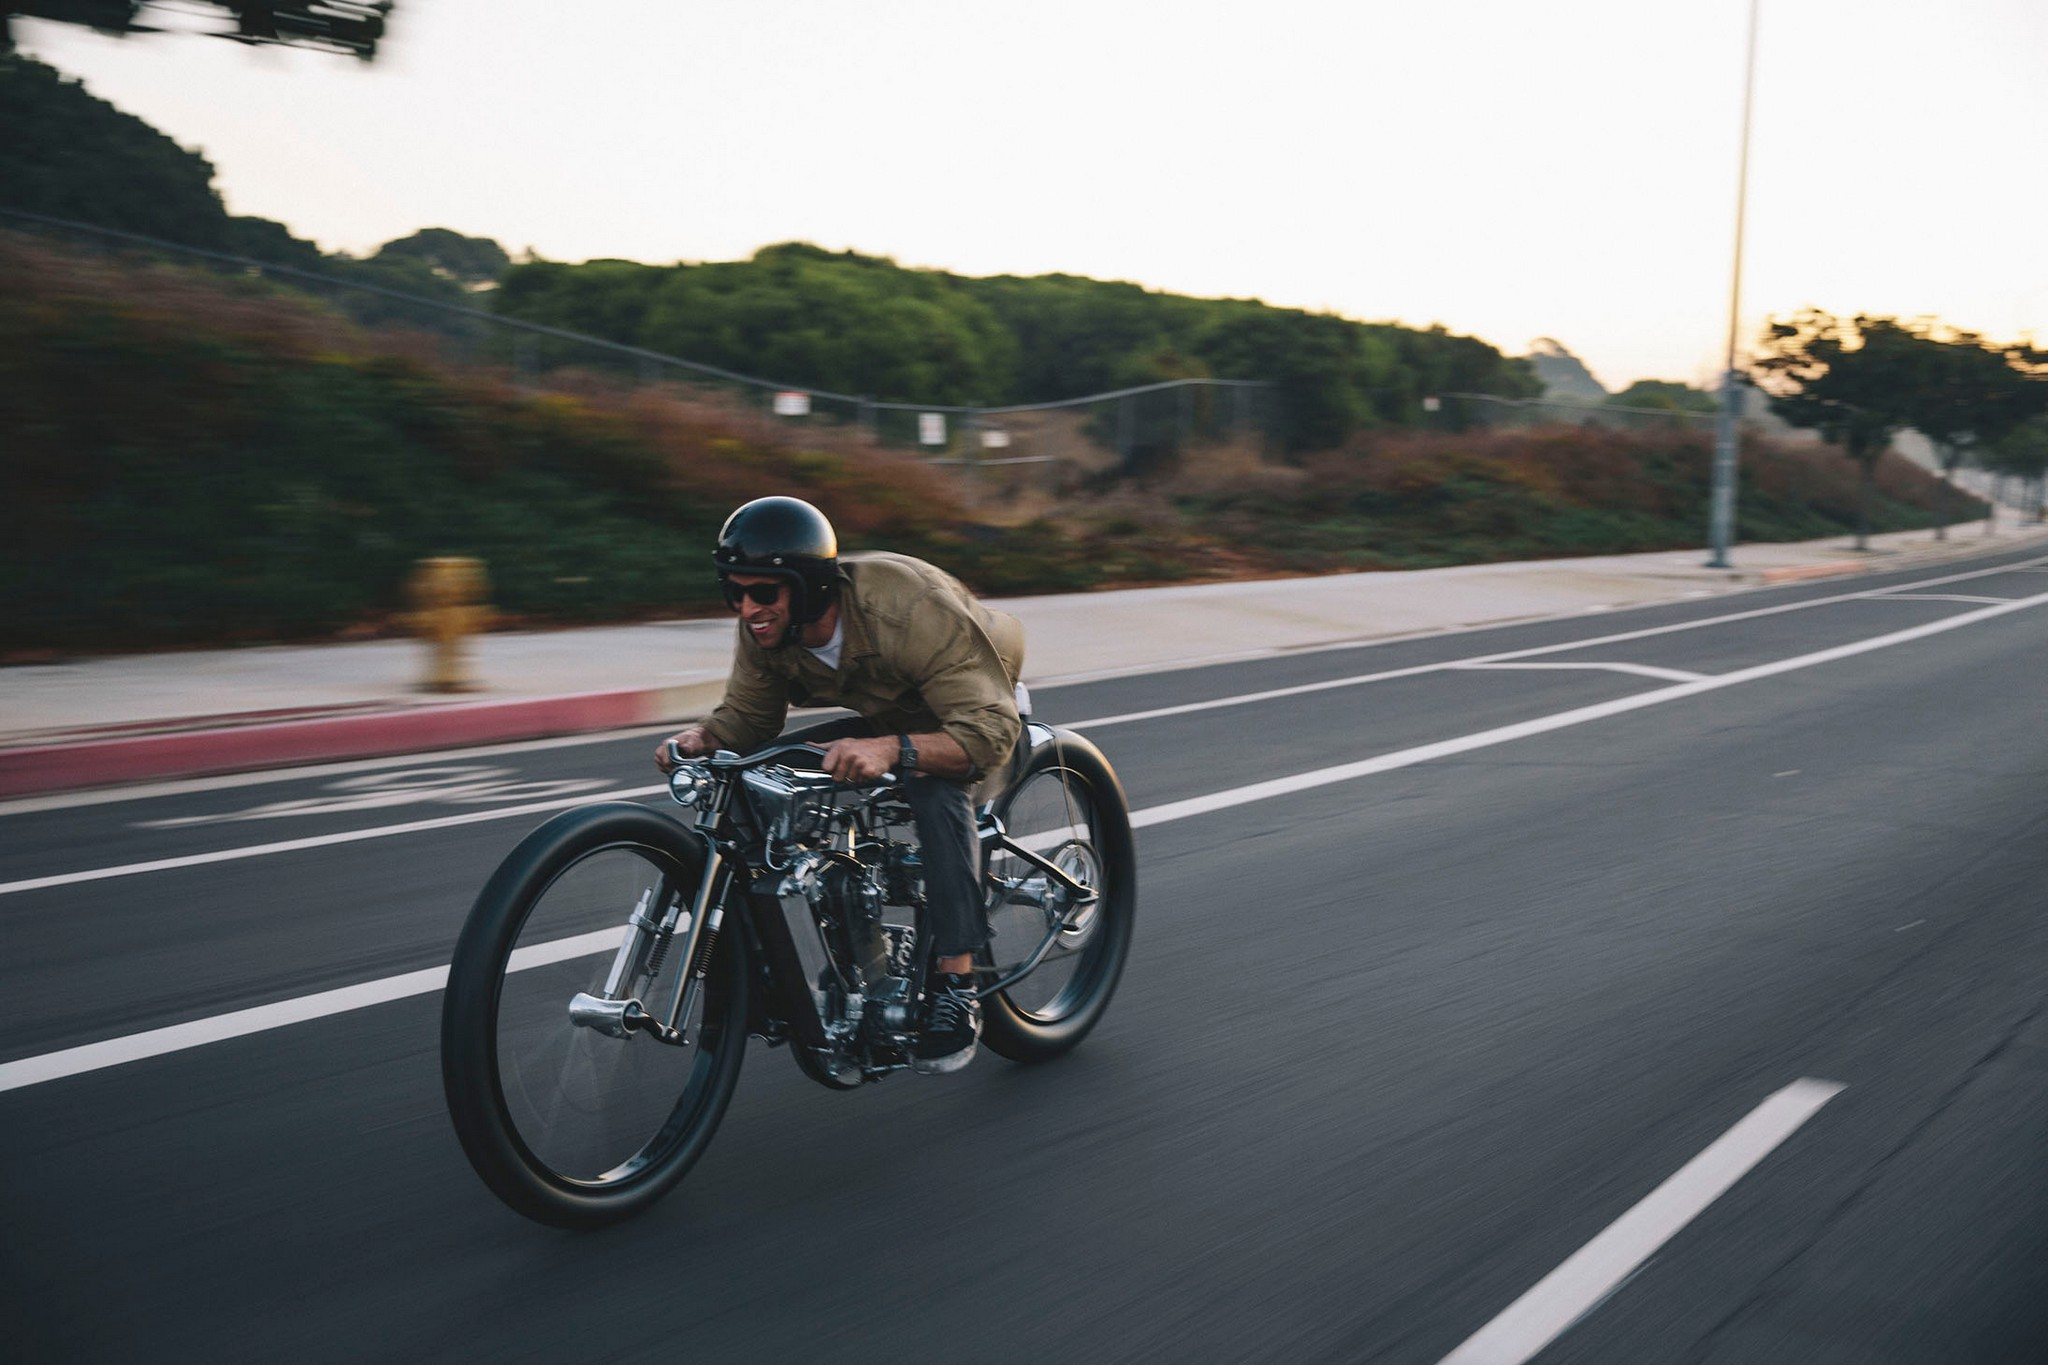 Max Hazan Rides his Custom Supercharged KTM Motorcycle on the Street